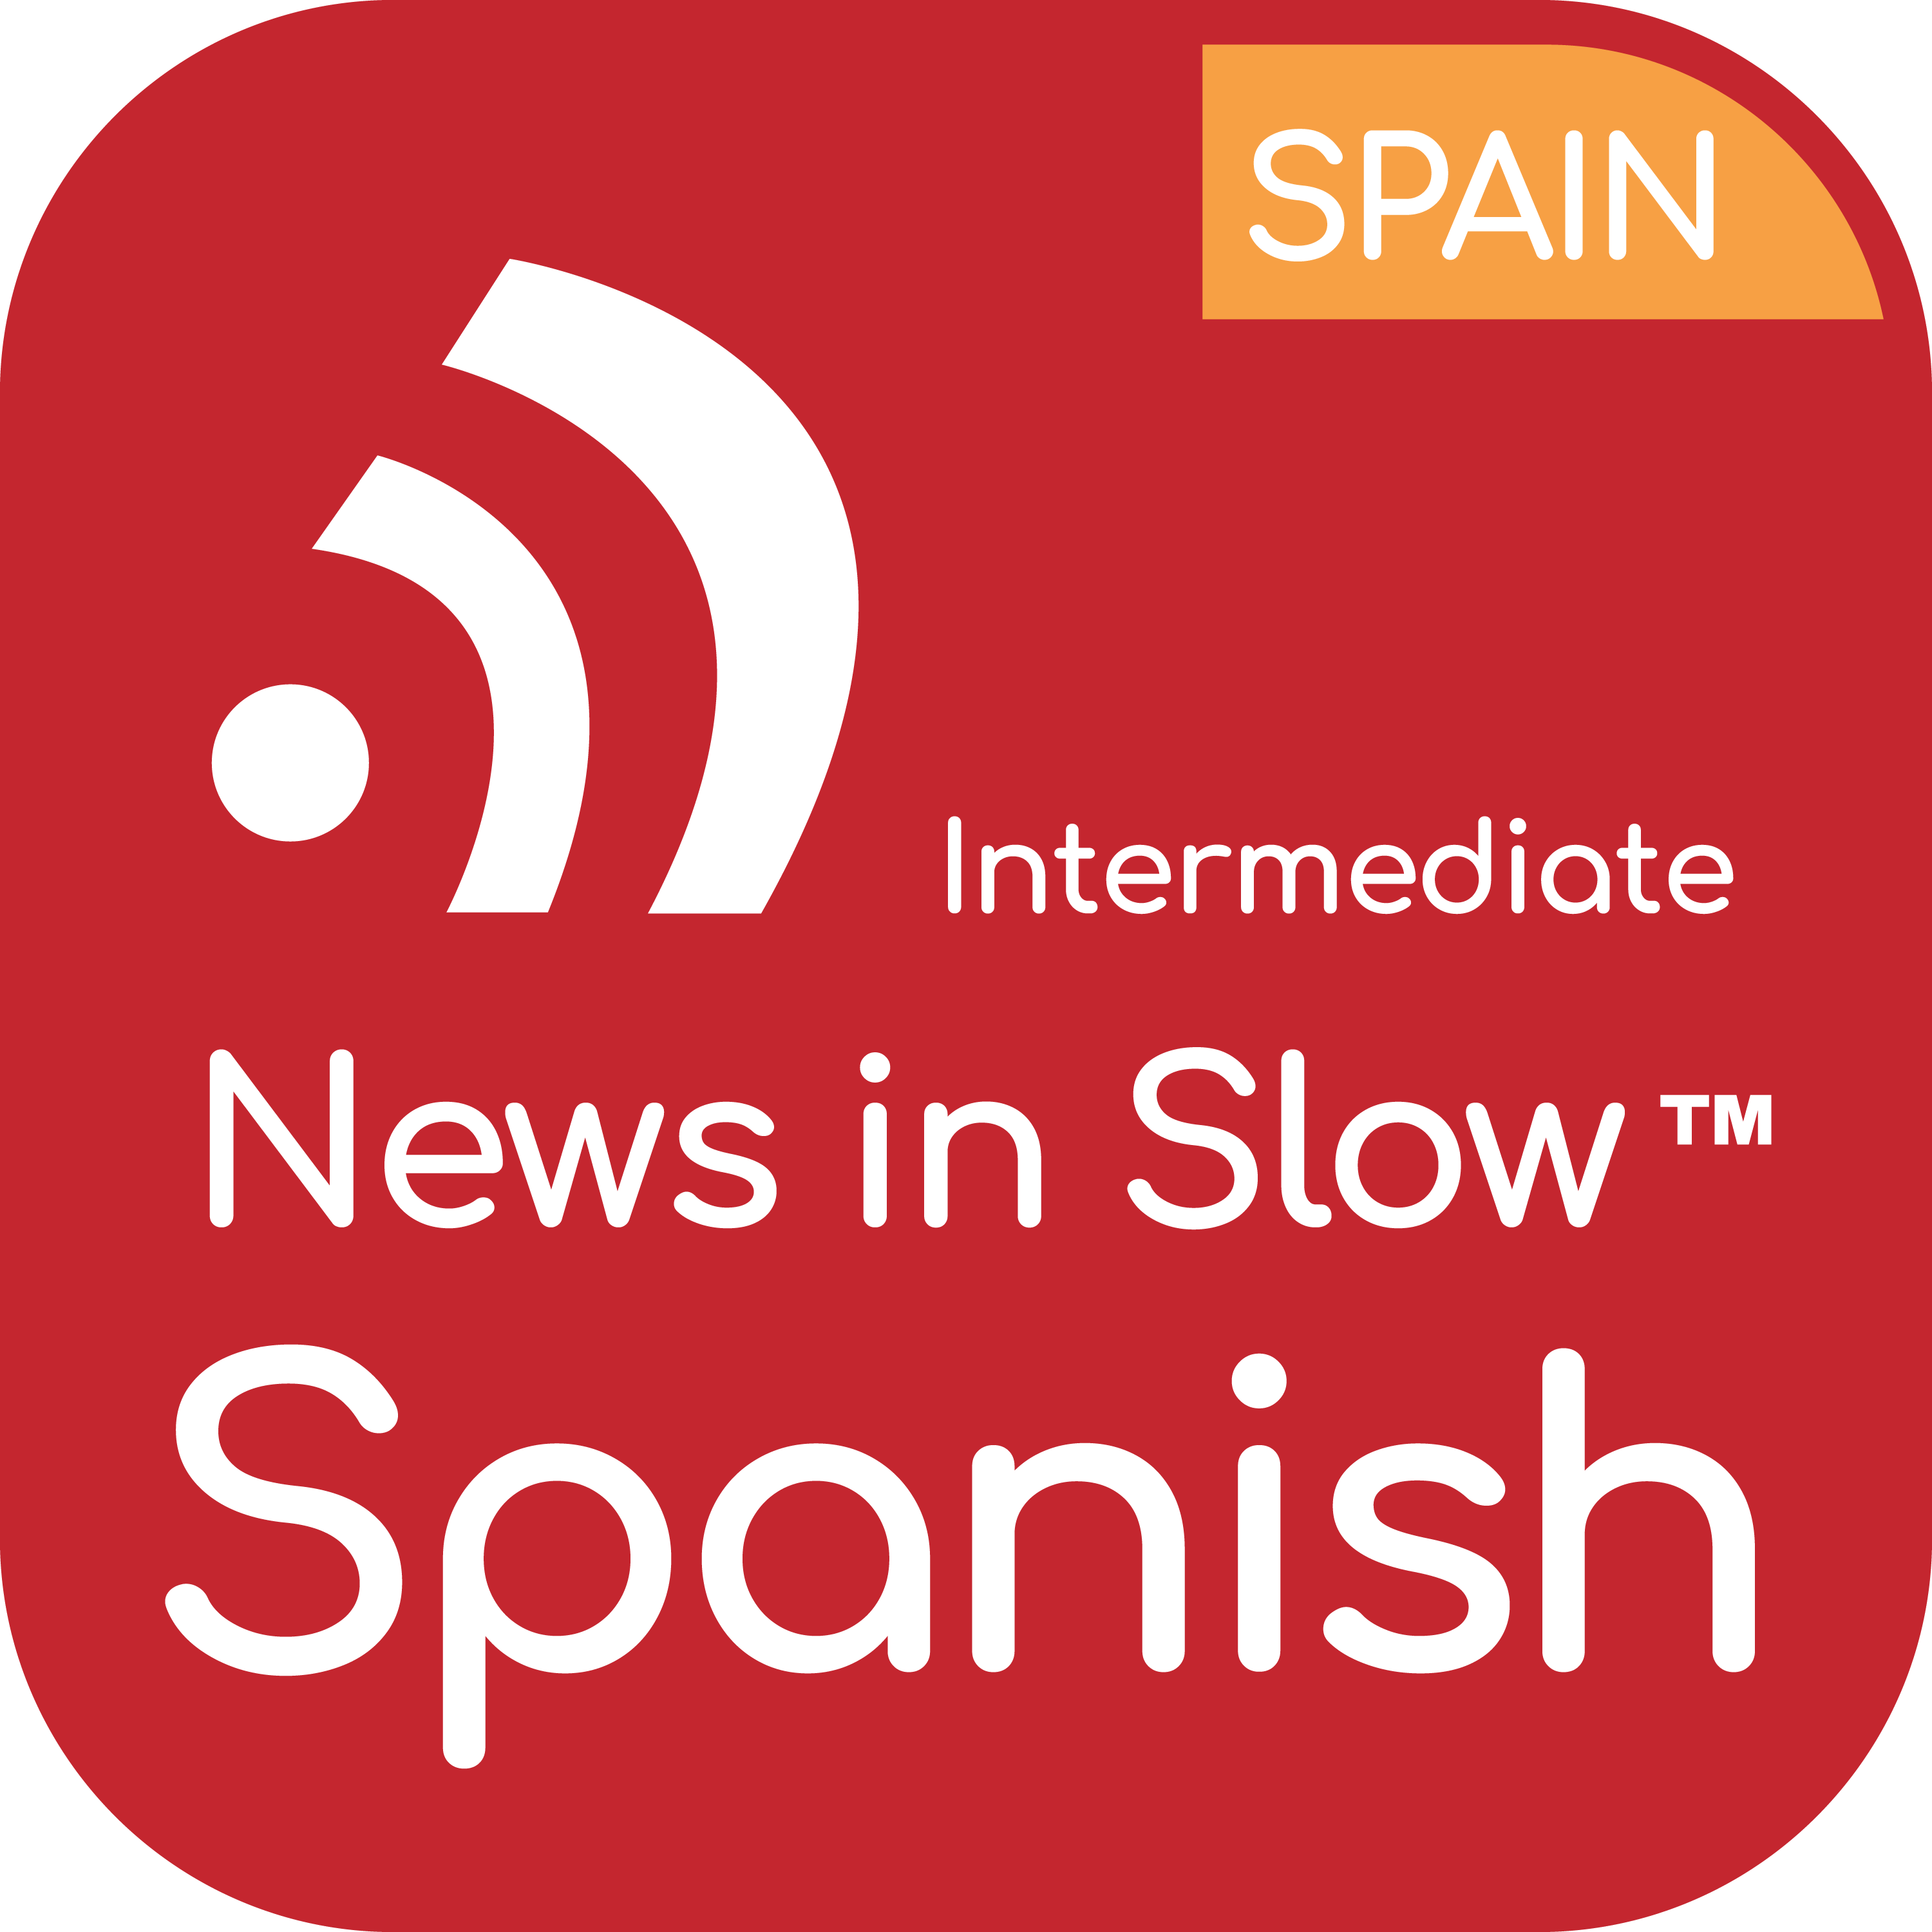 News in Slow Spanish - #625 - Study Spanish While Listening to the News